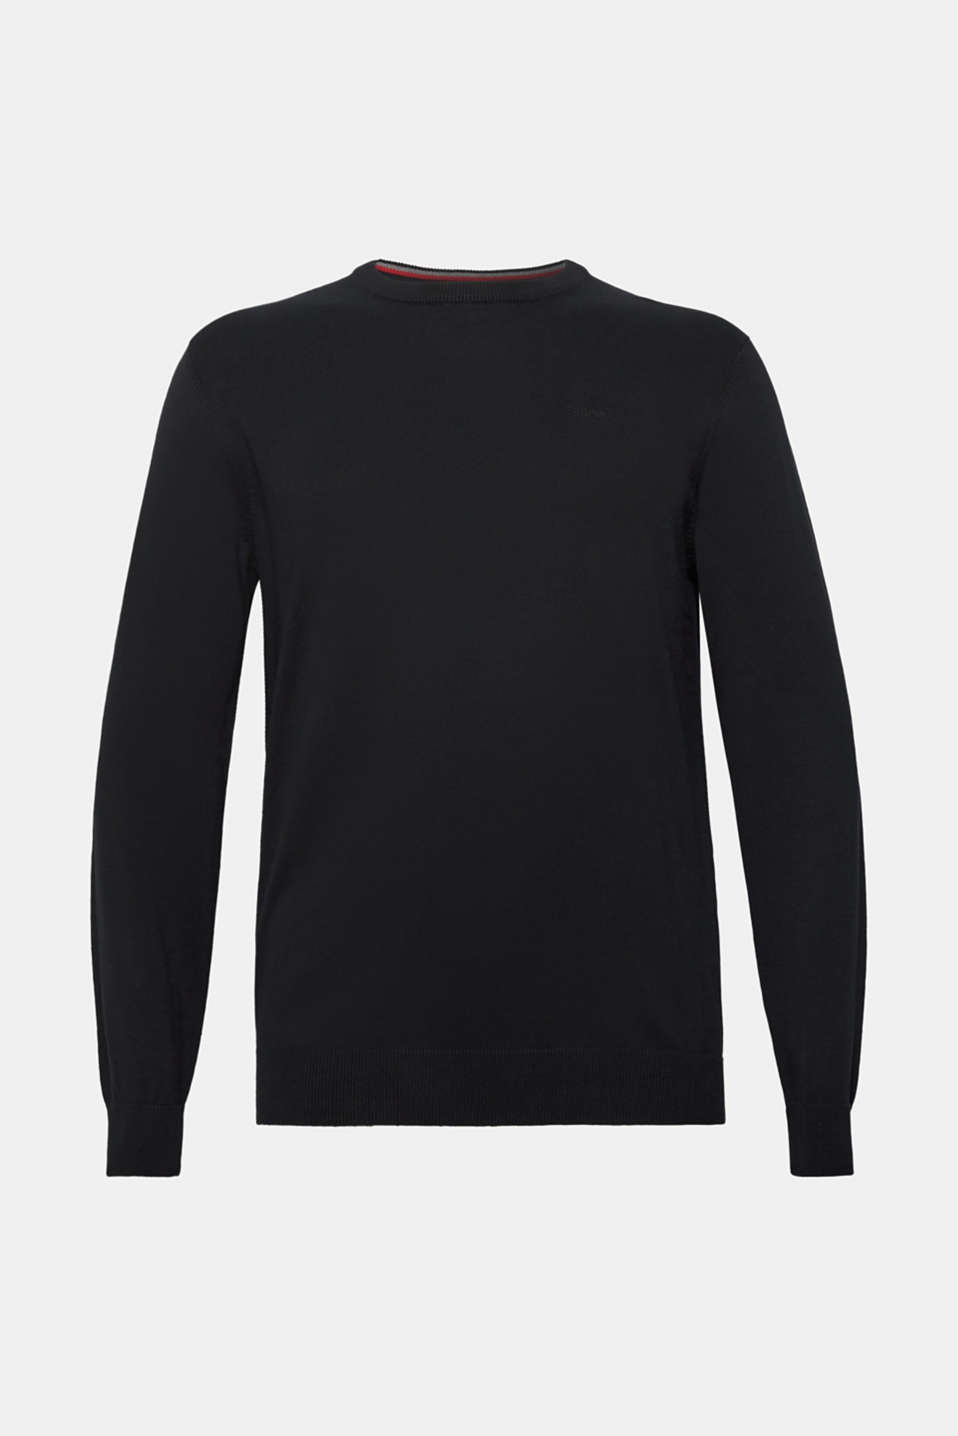 Jumper with a round neckline, 100% cotton, BLACK, detail image number 6